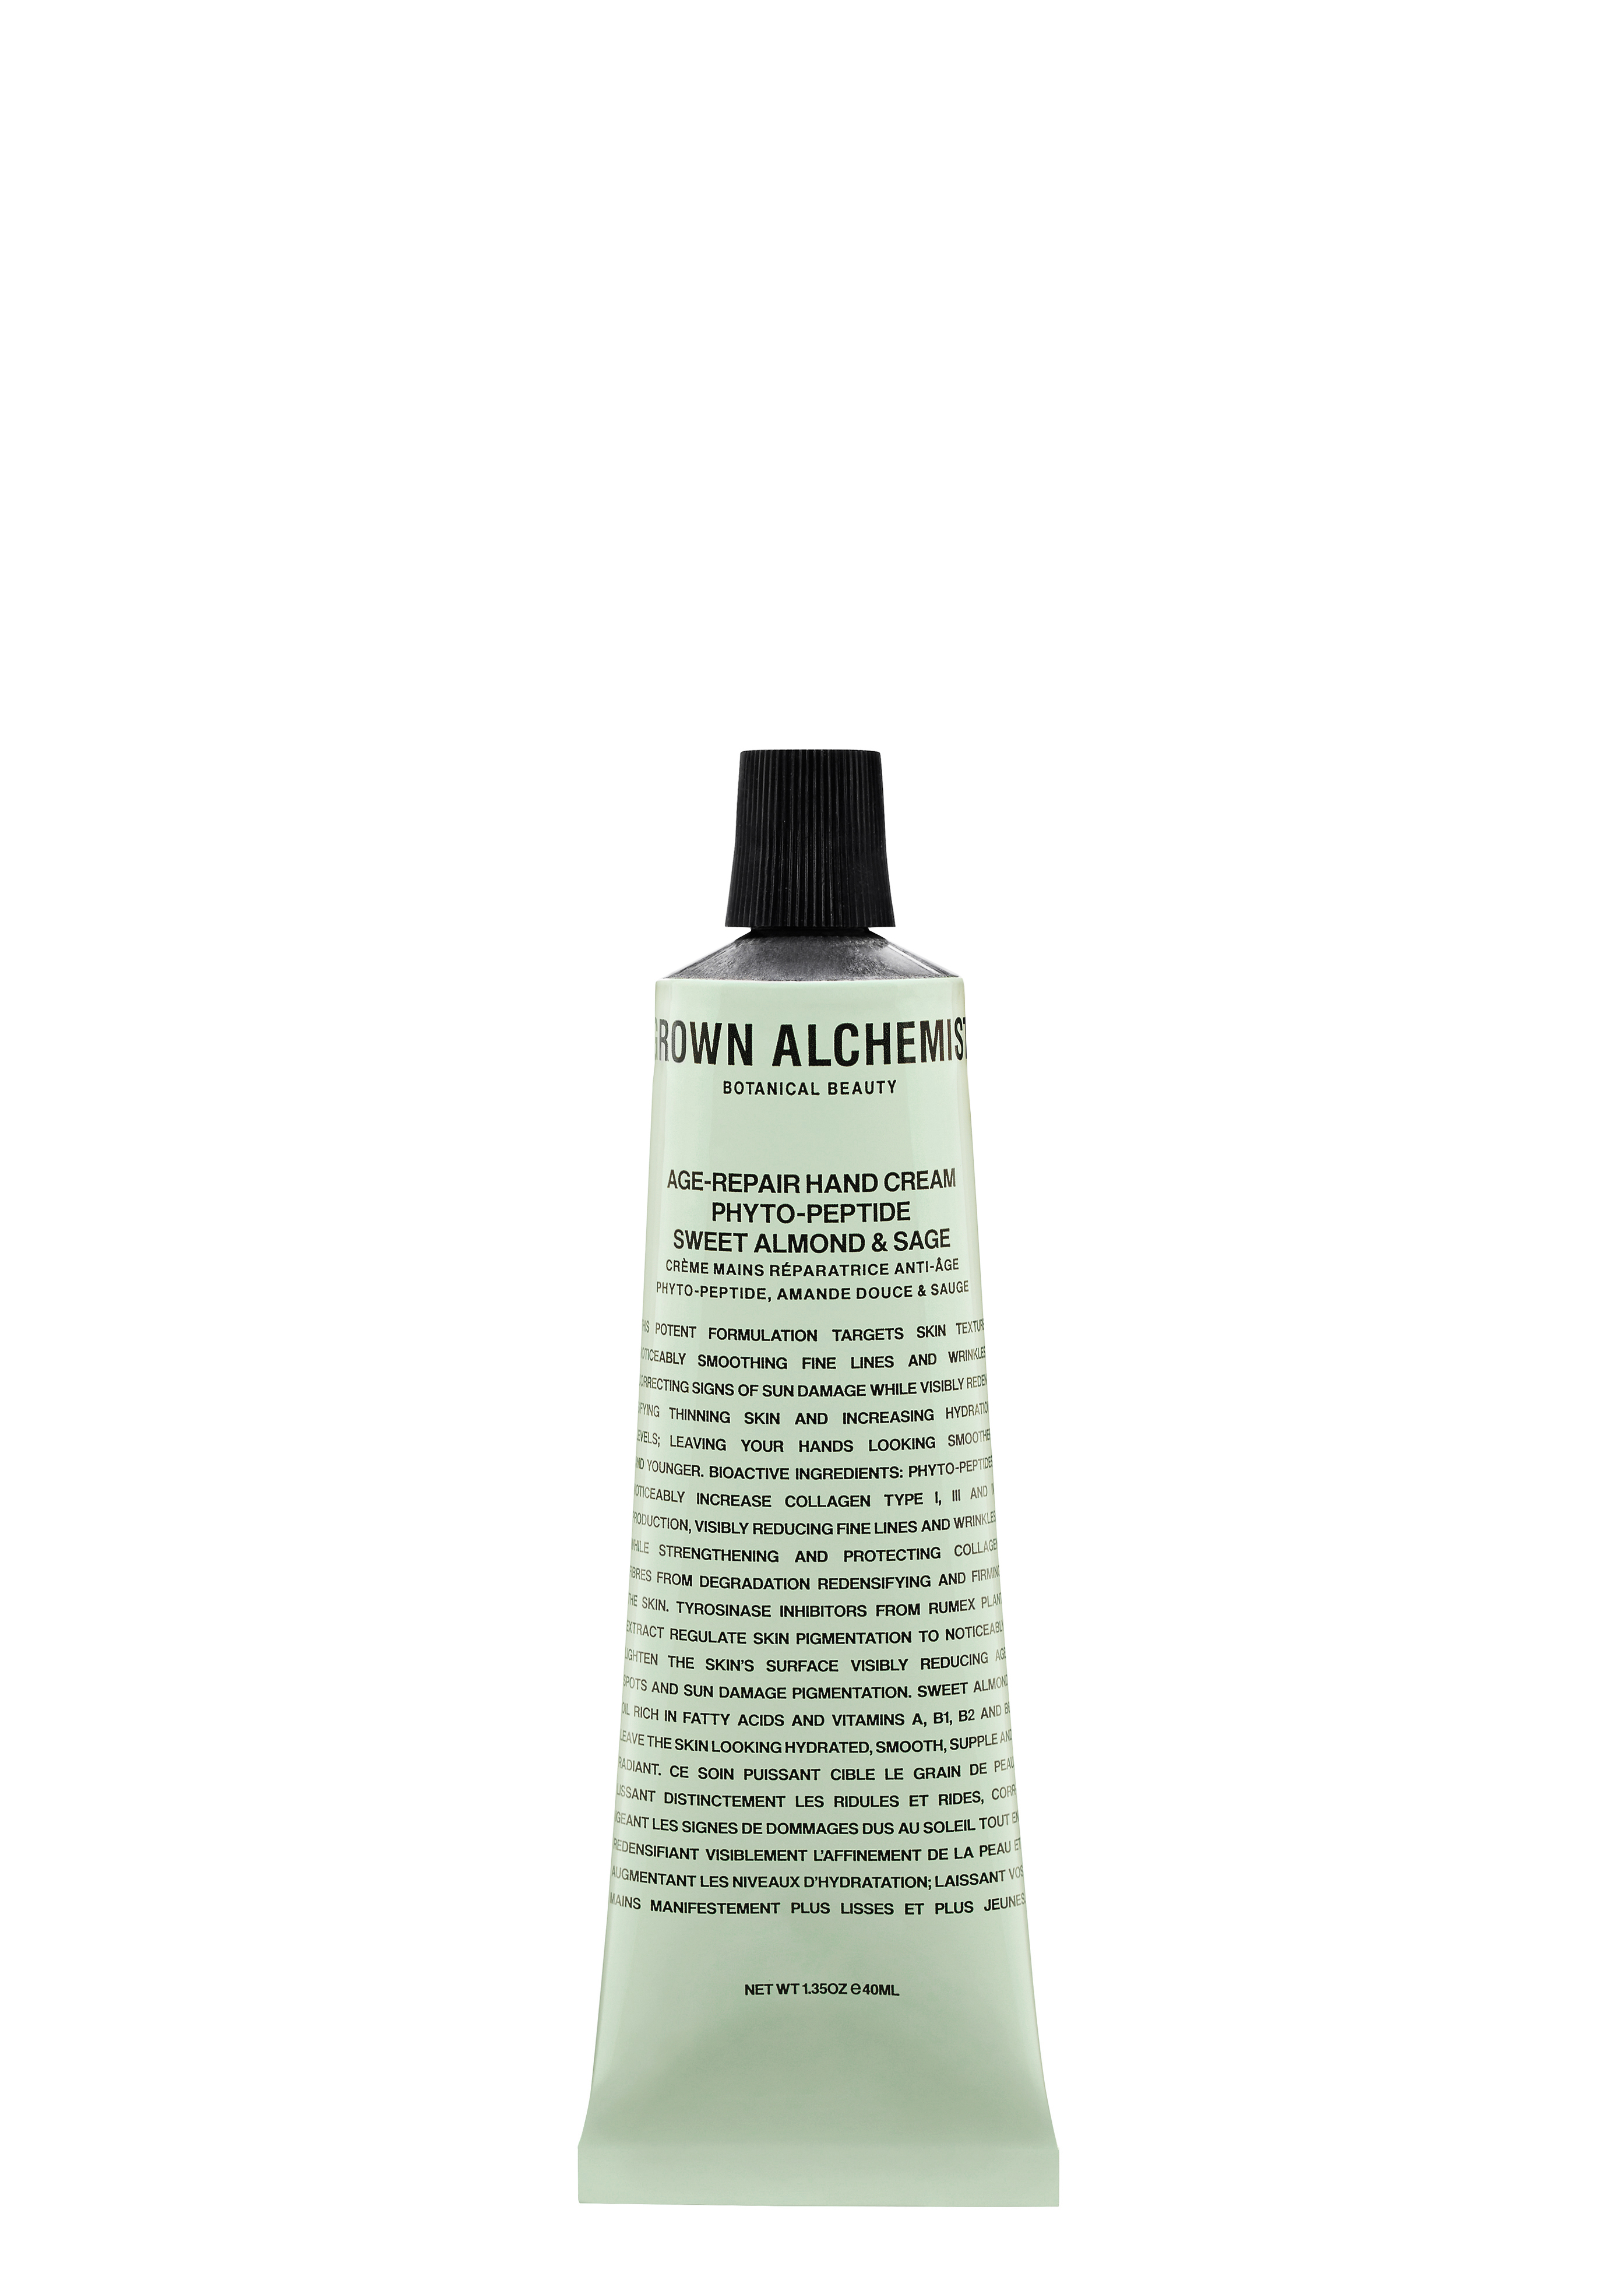 Age-Repair Phyto-Peptide & Sweet Almond Sage Hand Creme 40ml